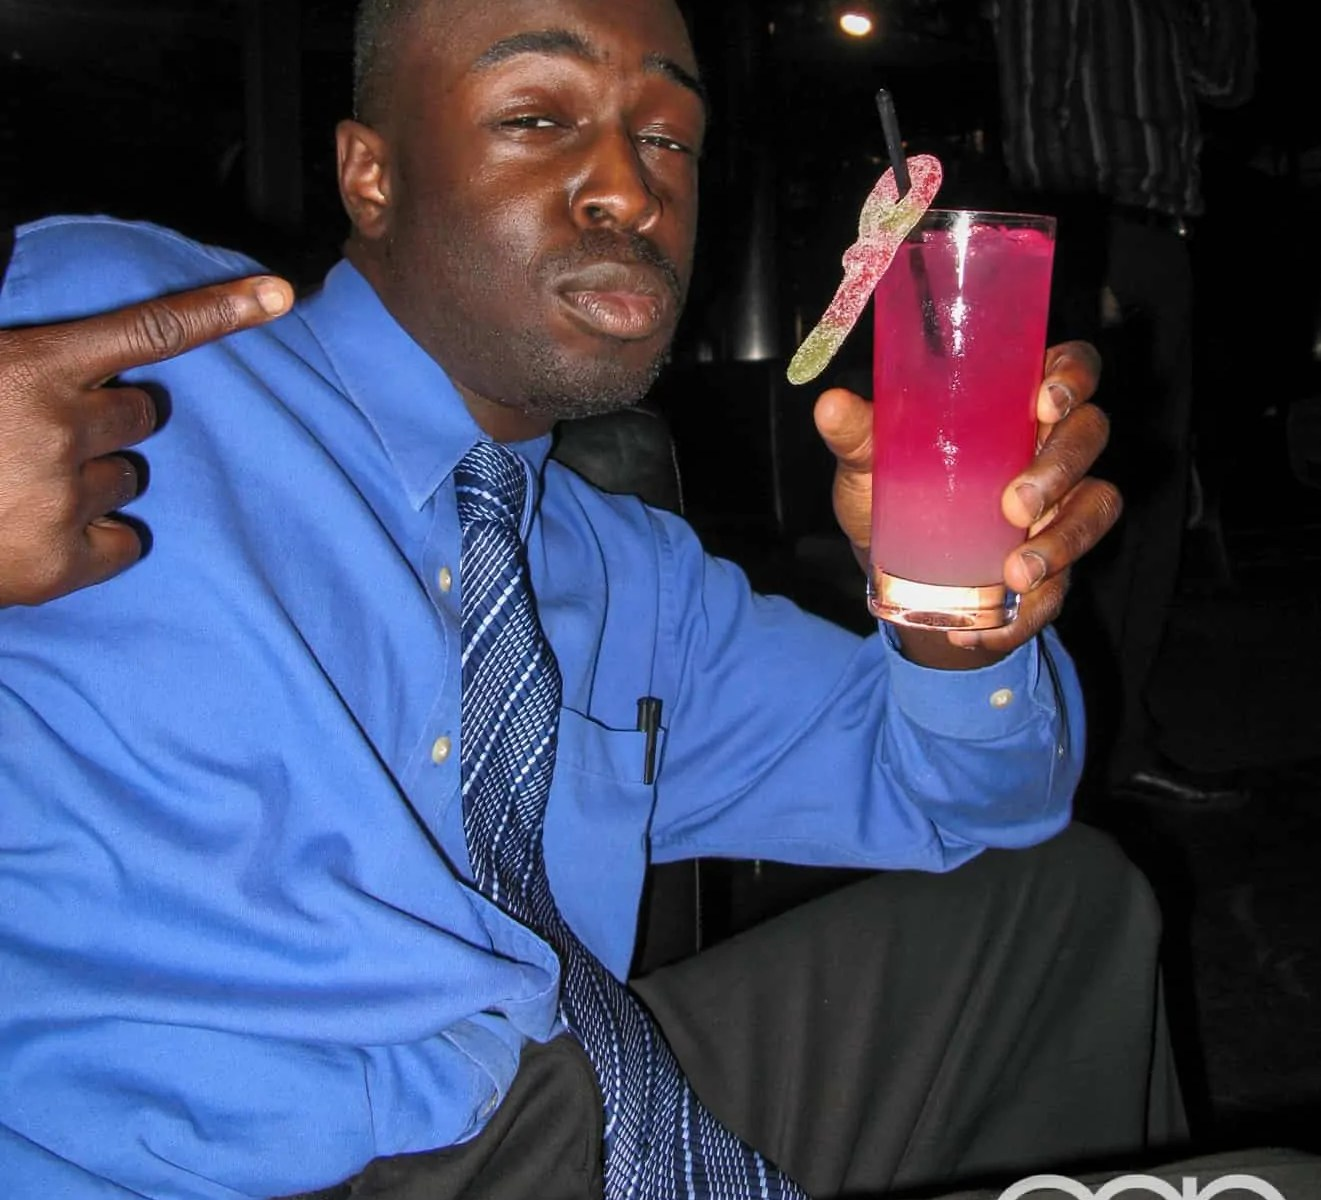 Me posing with a fruity drink